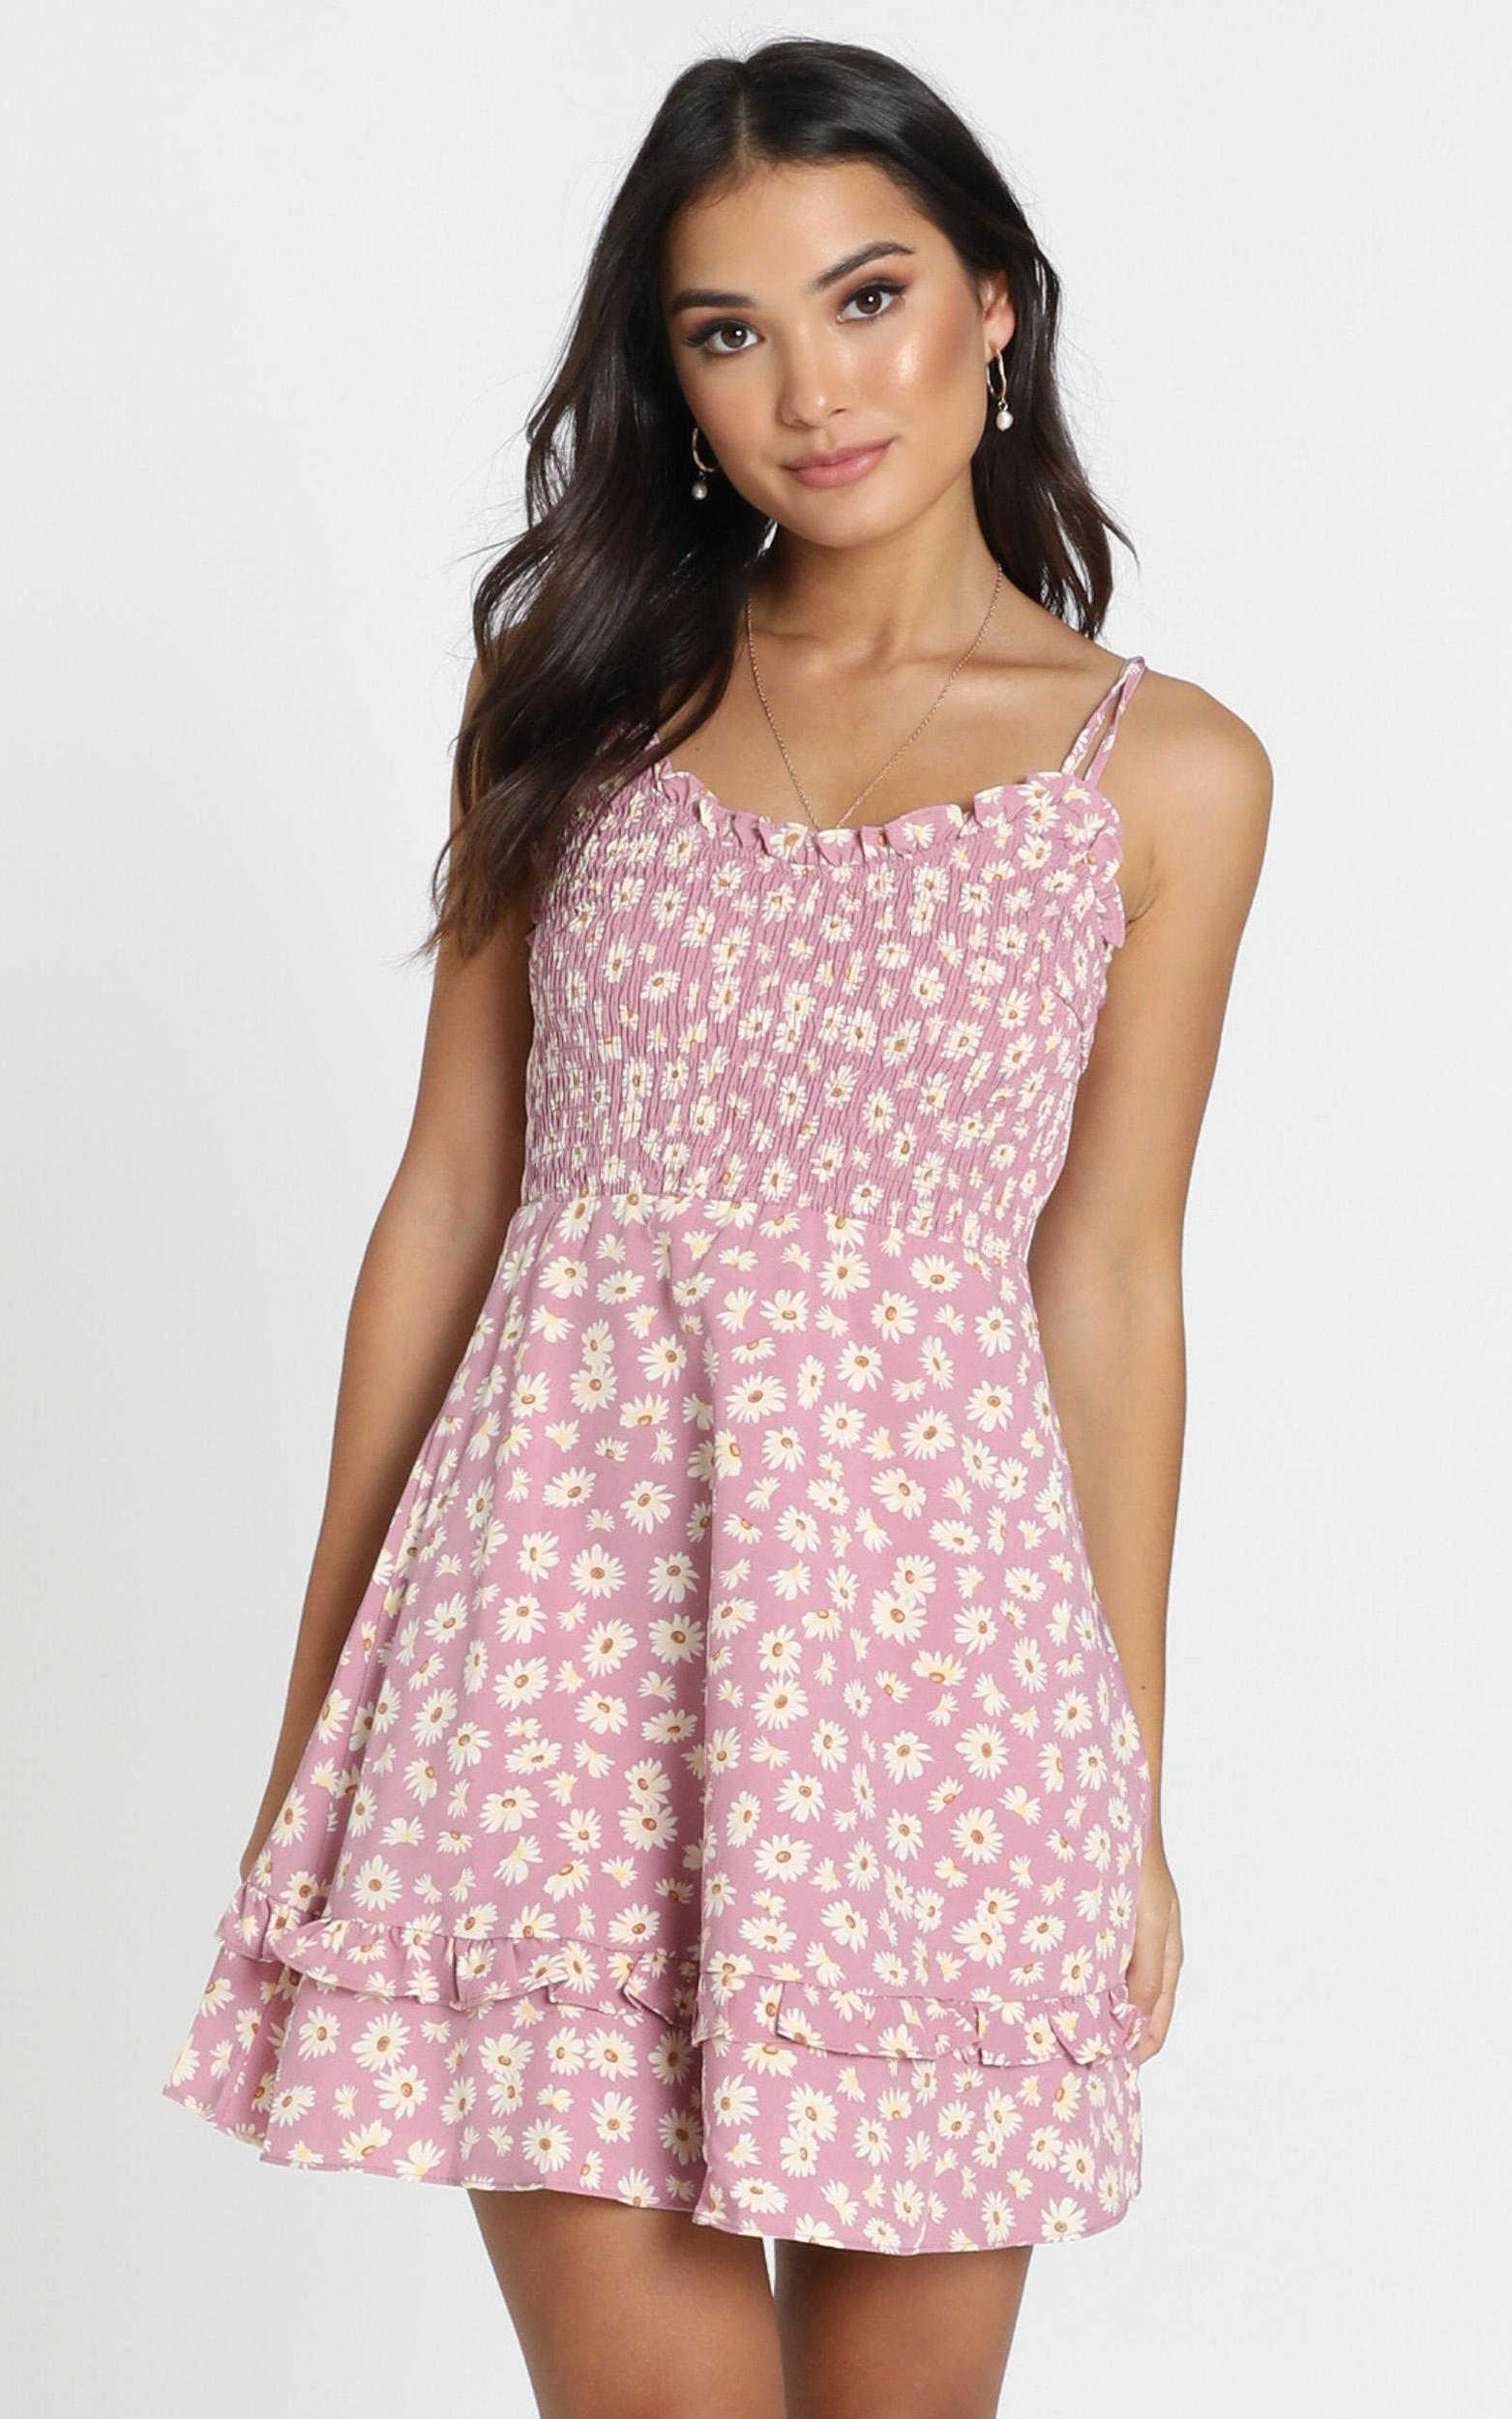 Serenity Shirred Bodice Mini Dress in pink floral - 12 (L), Pink, hi-res image number null